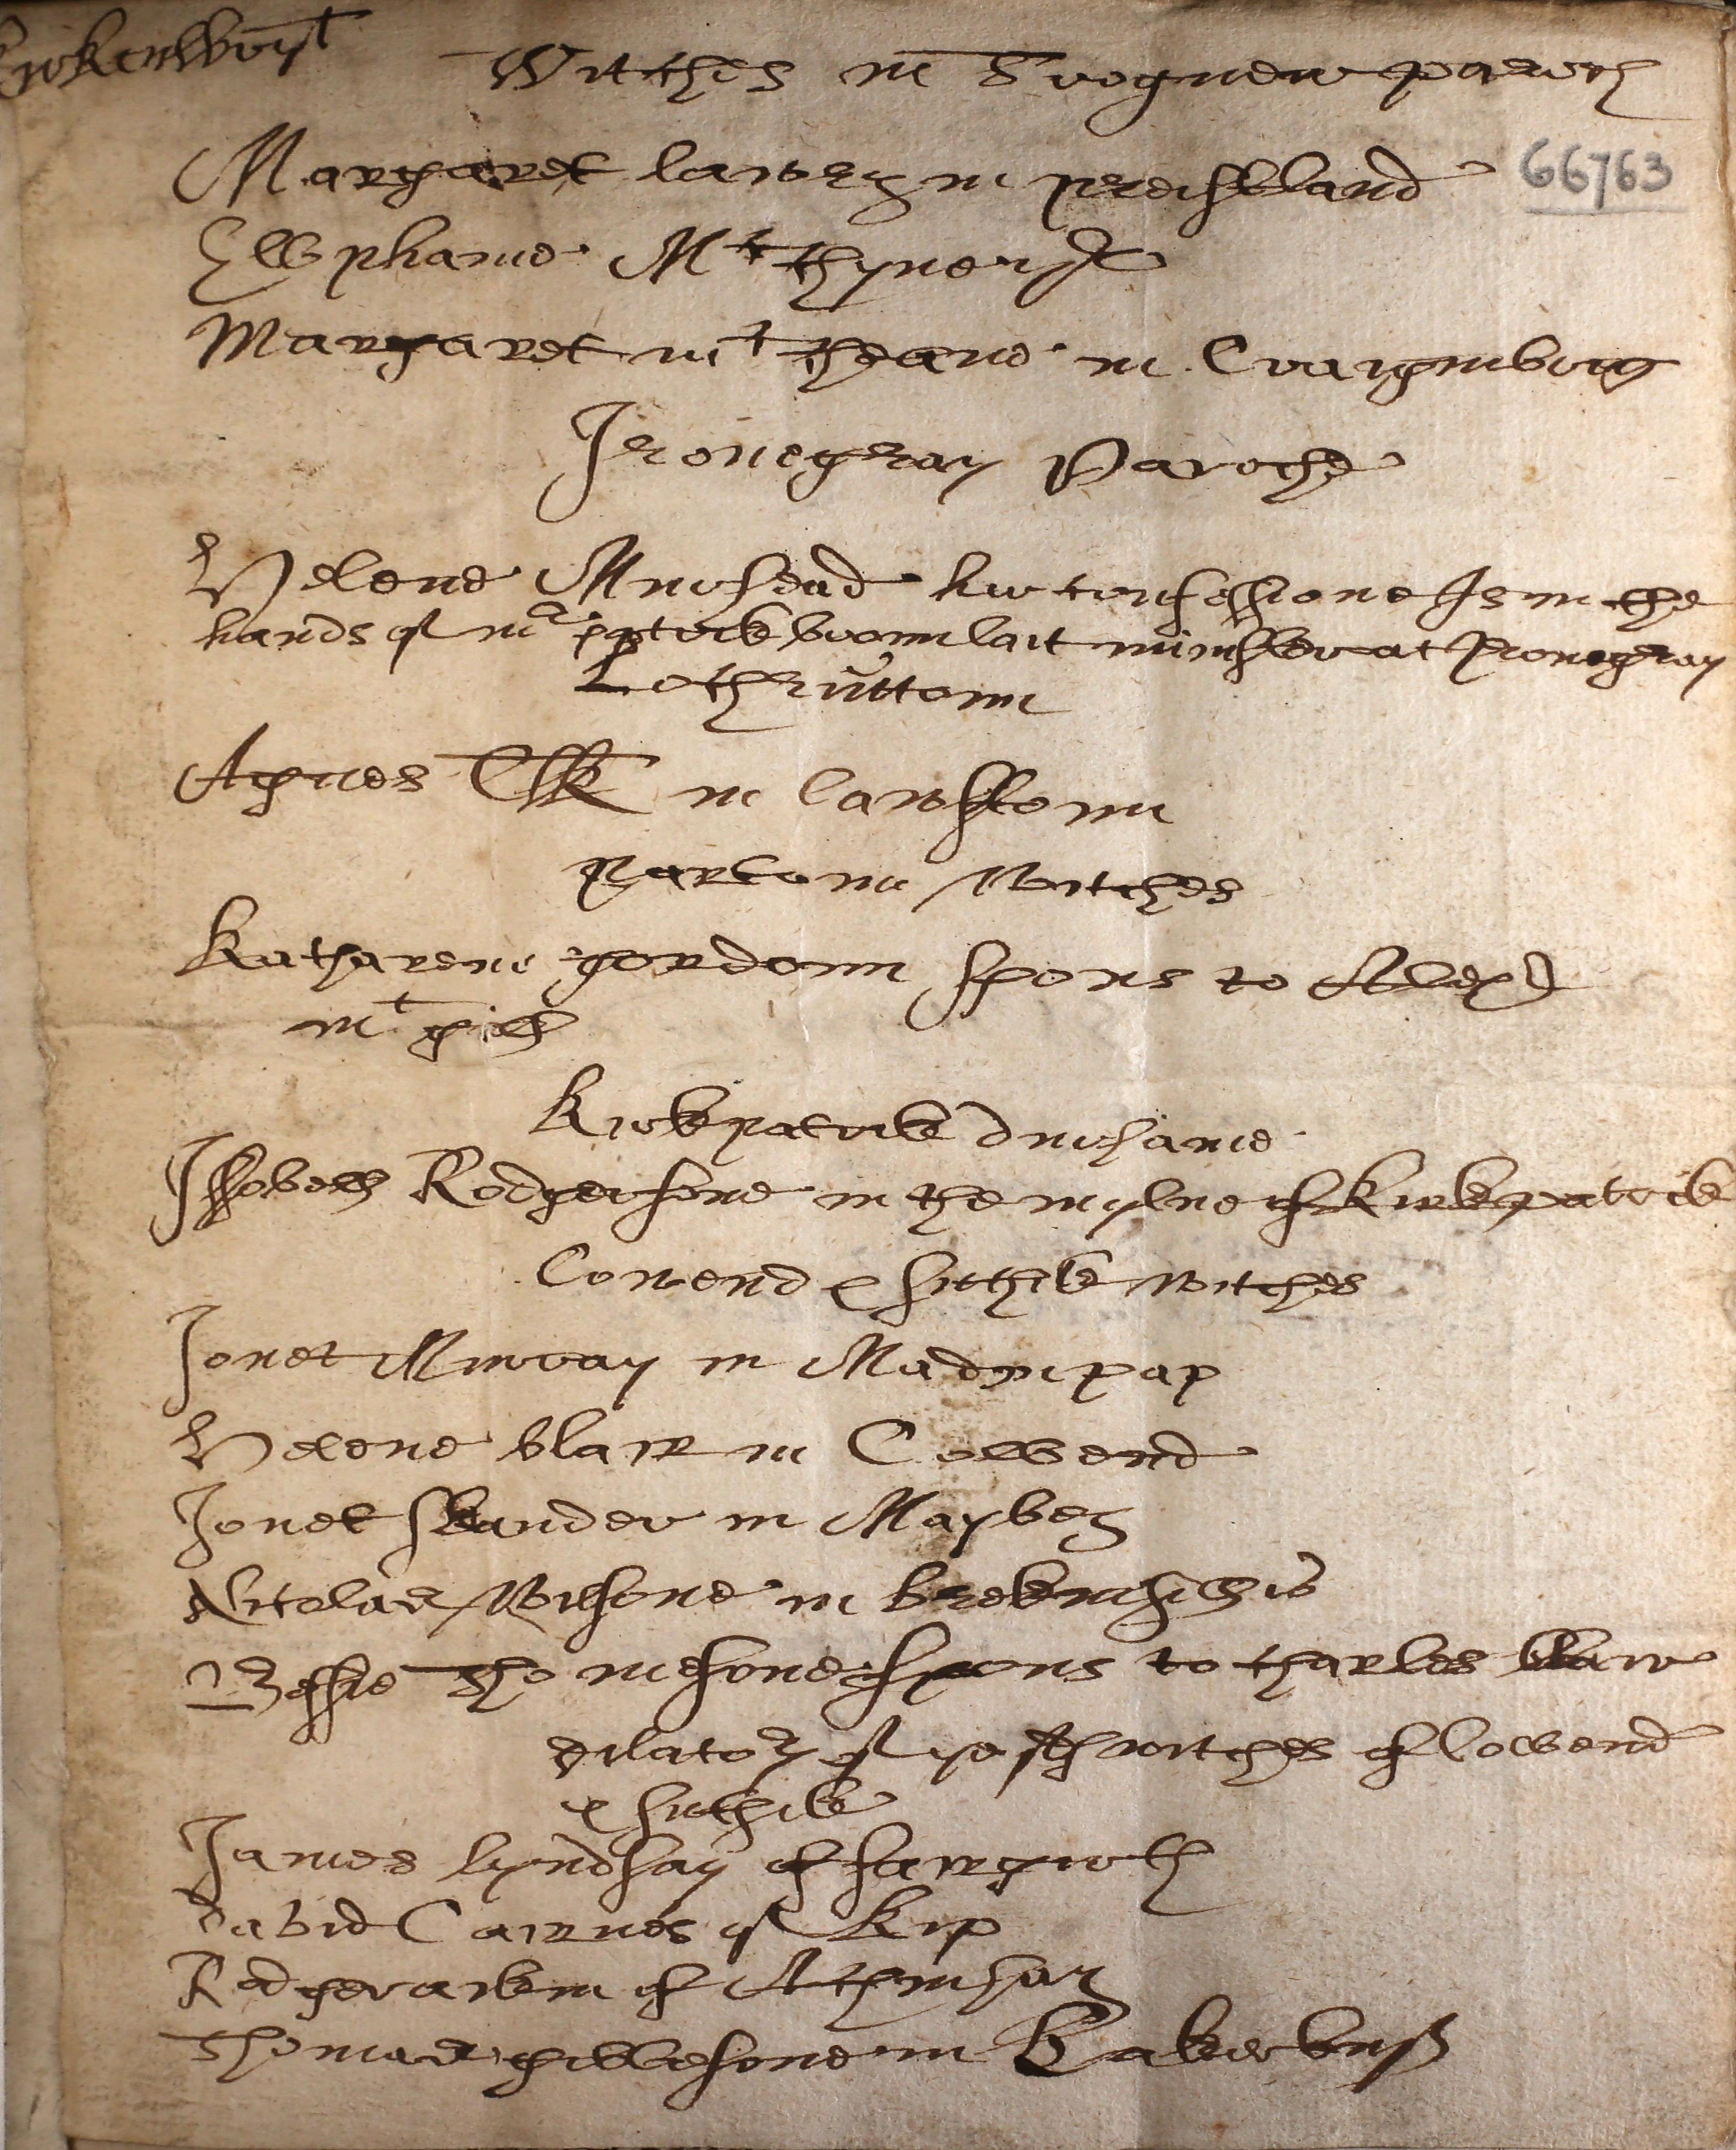 Names of the witches (in Scotland) 1658 - Welcome Library